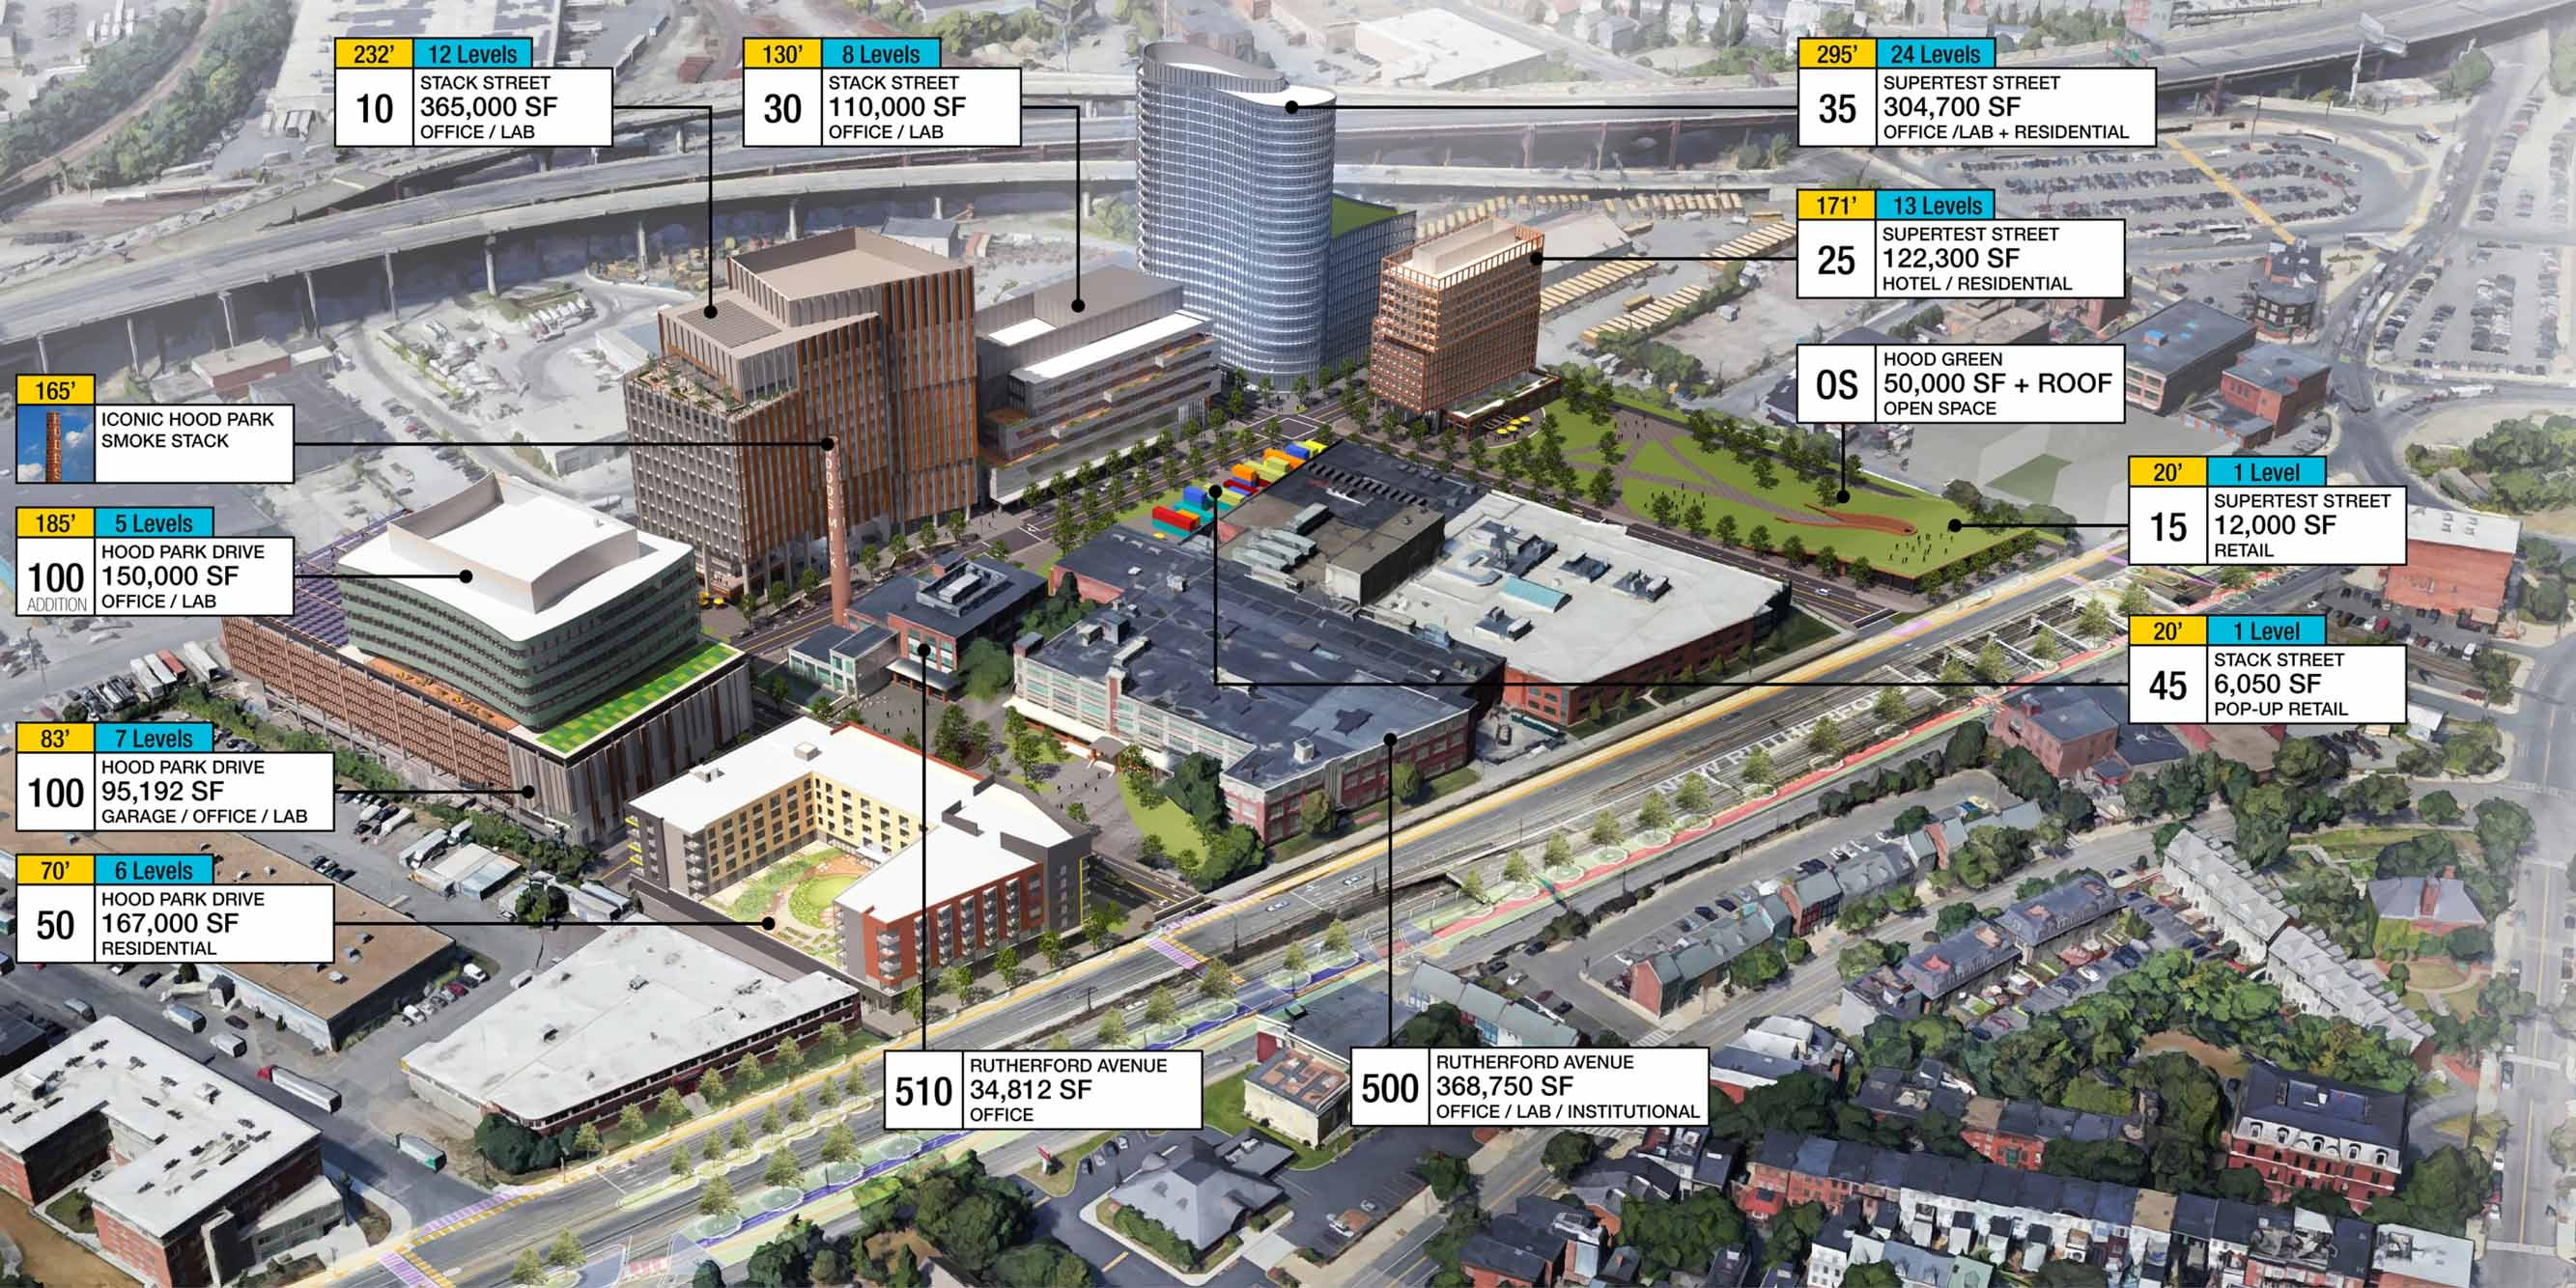 Annotated rendering of full Hood Park Master Plan site in Charlestown, MA